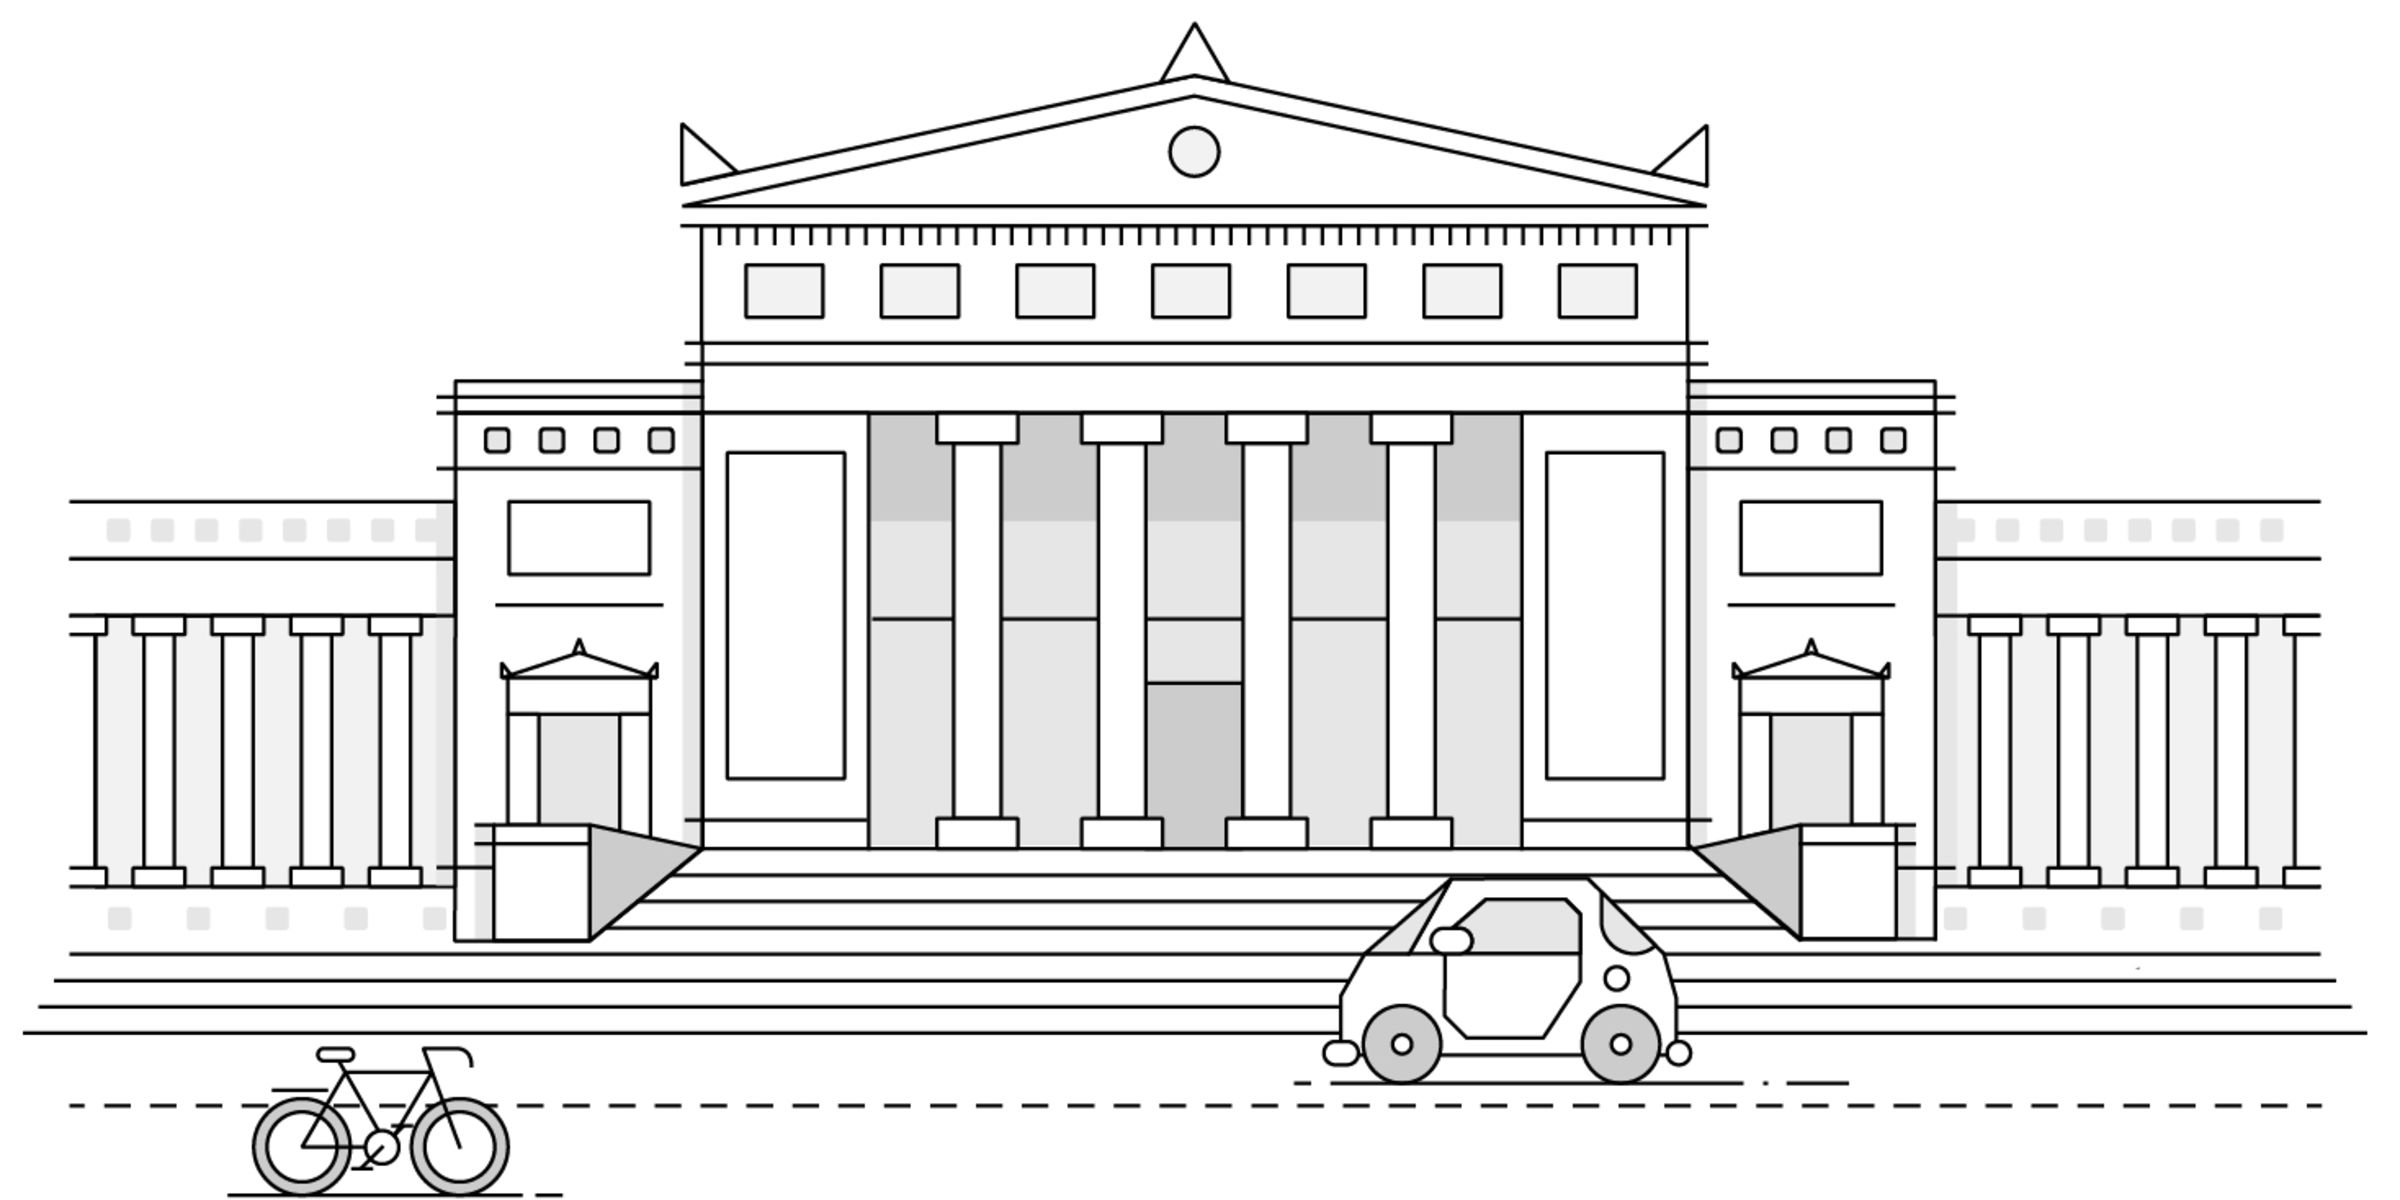 Illustration of the north side of the Field Museum building. Simplified line drawing with a taxi cab and bicycle on the street in front of the Field museum building.